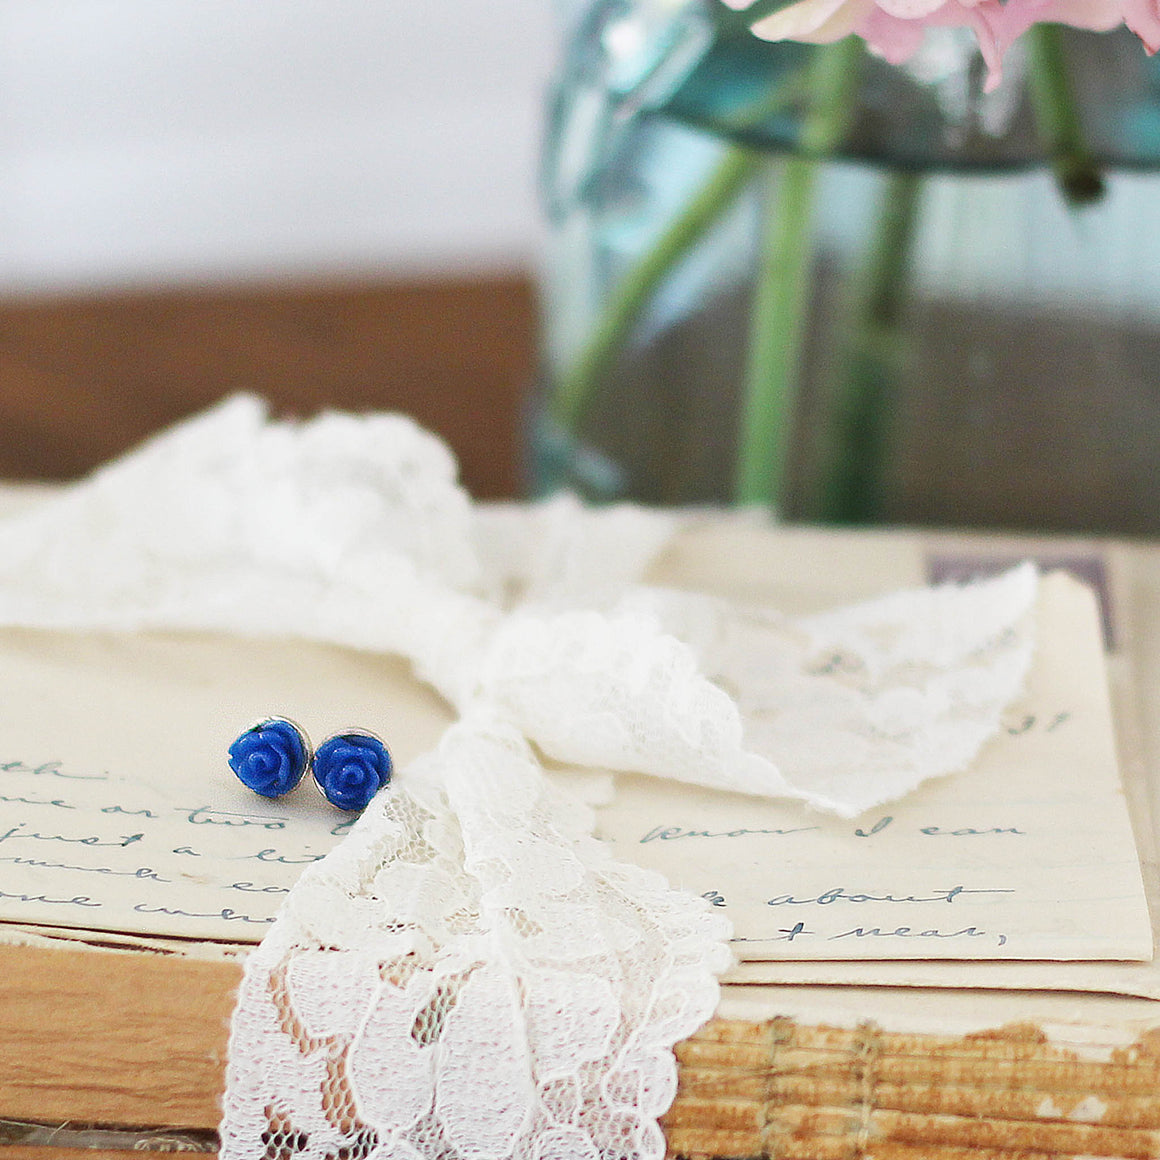 Post Rose Earrings Deep Blue on lace tied vintage books